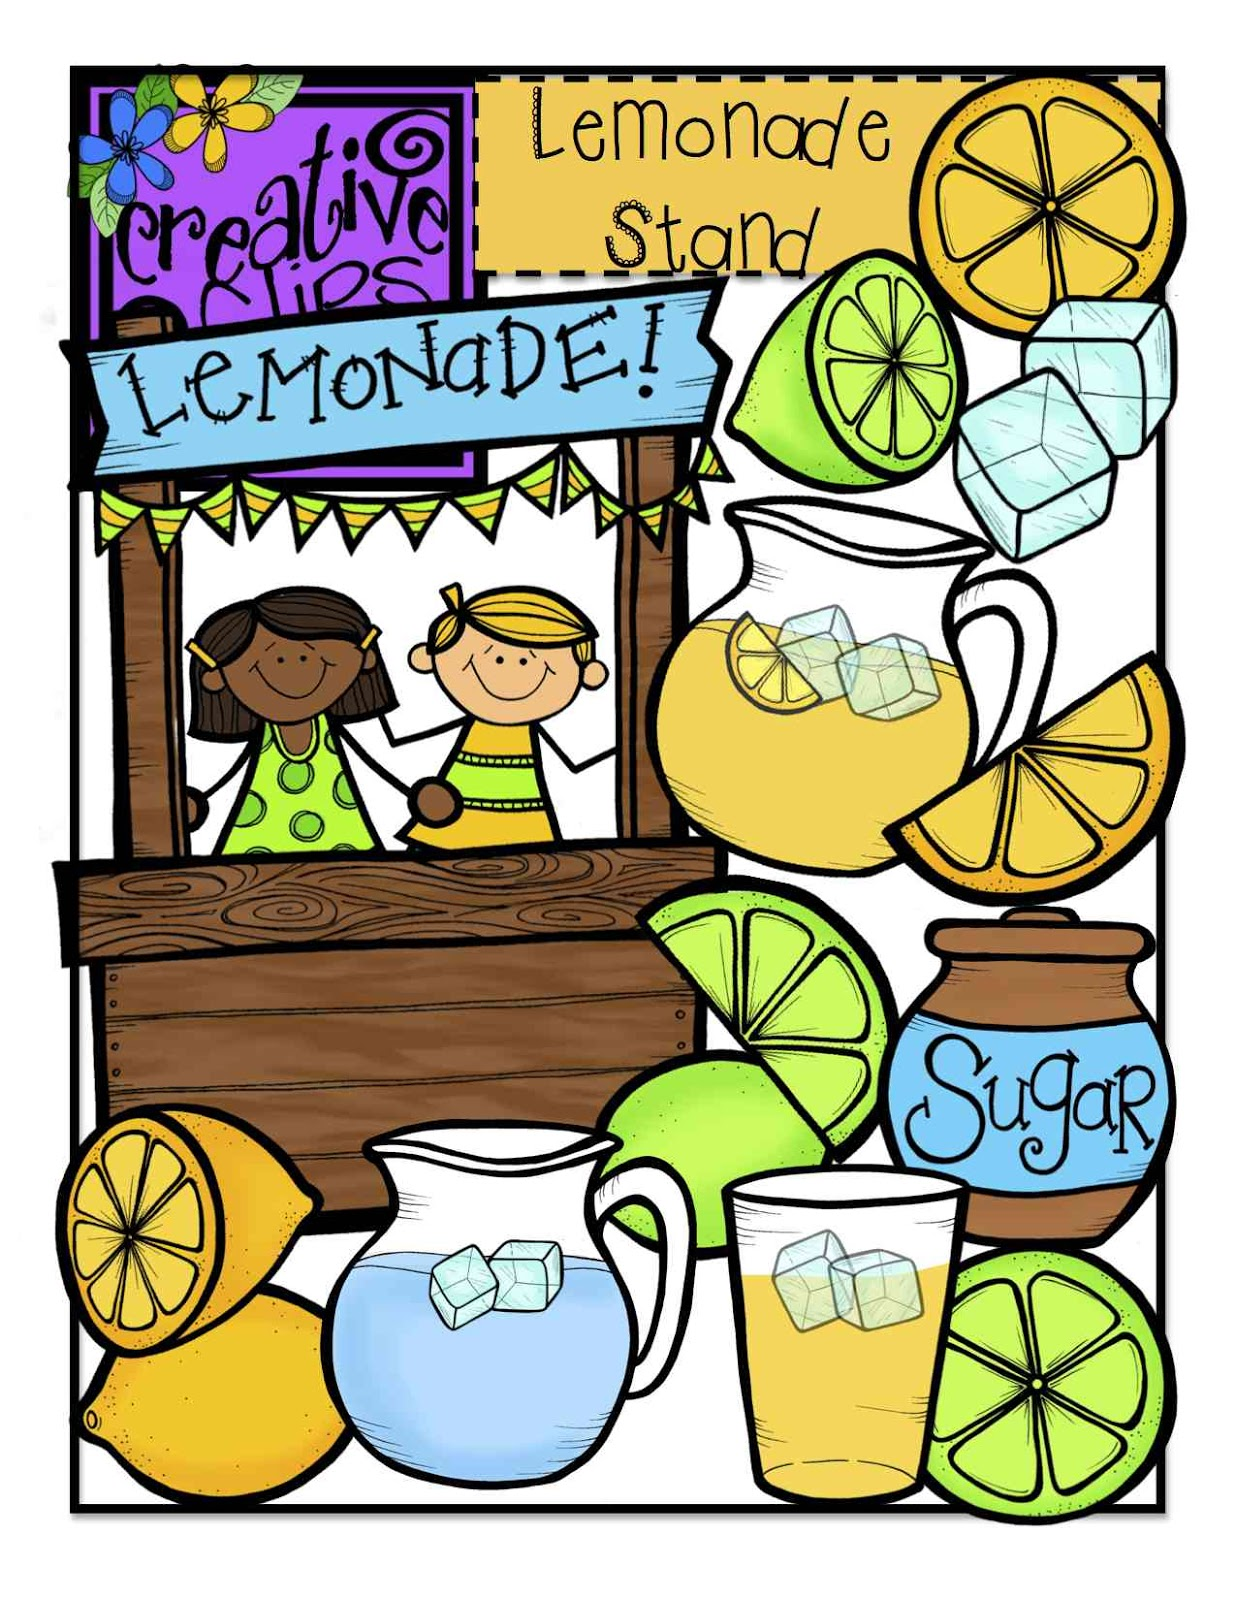 1236x1600 The Creative Chalkboard Free Lemonade Stand Clipart!!!!